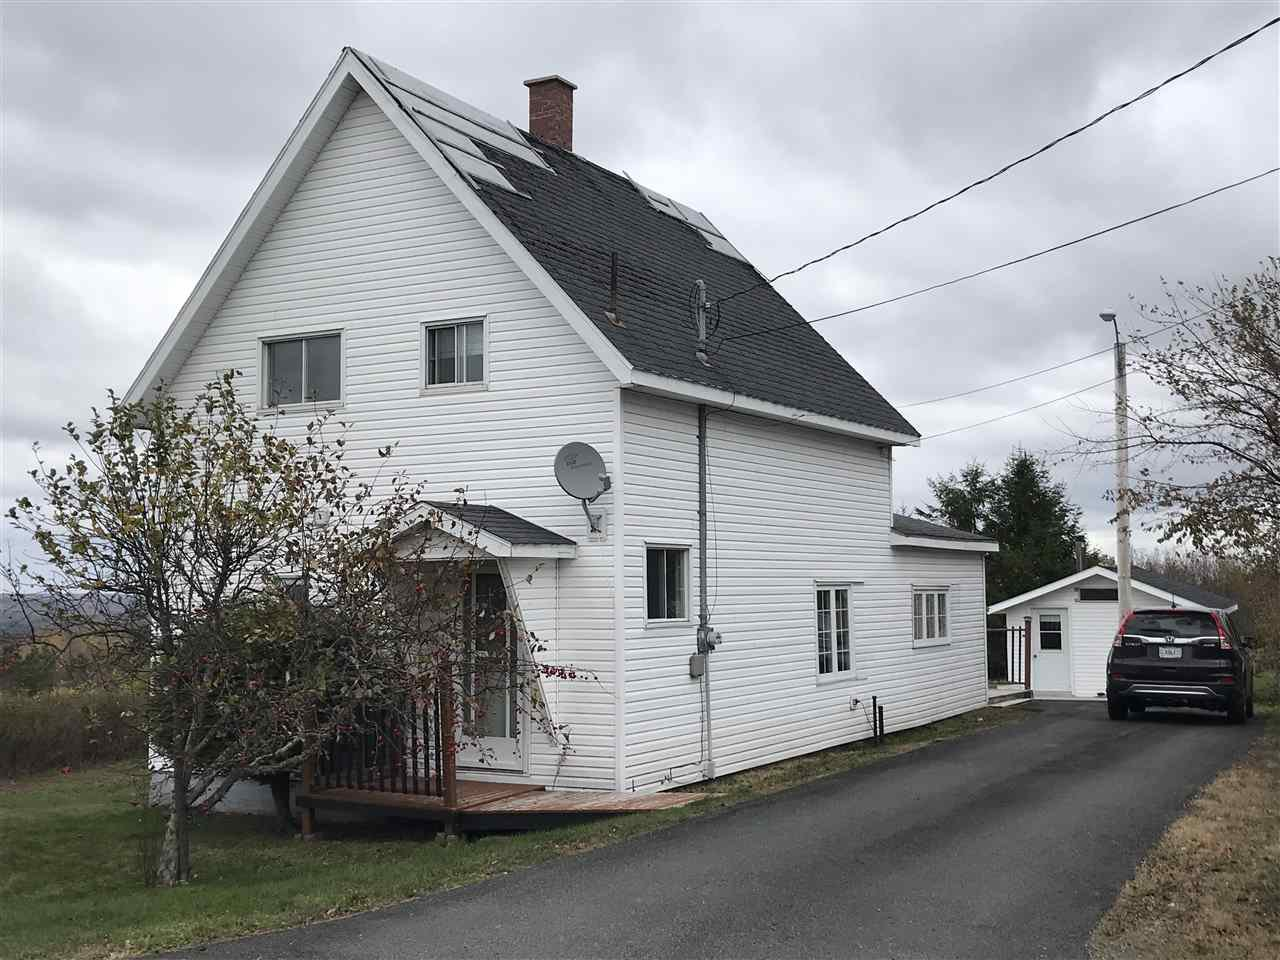 Main Photo: 7 McKay Street in Springhill: 102S-South Of Hwy 104, Parrsboro and area Residential for sale (Northern Region)  : MLS®# 202023274